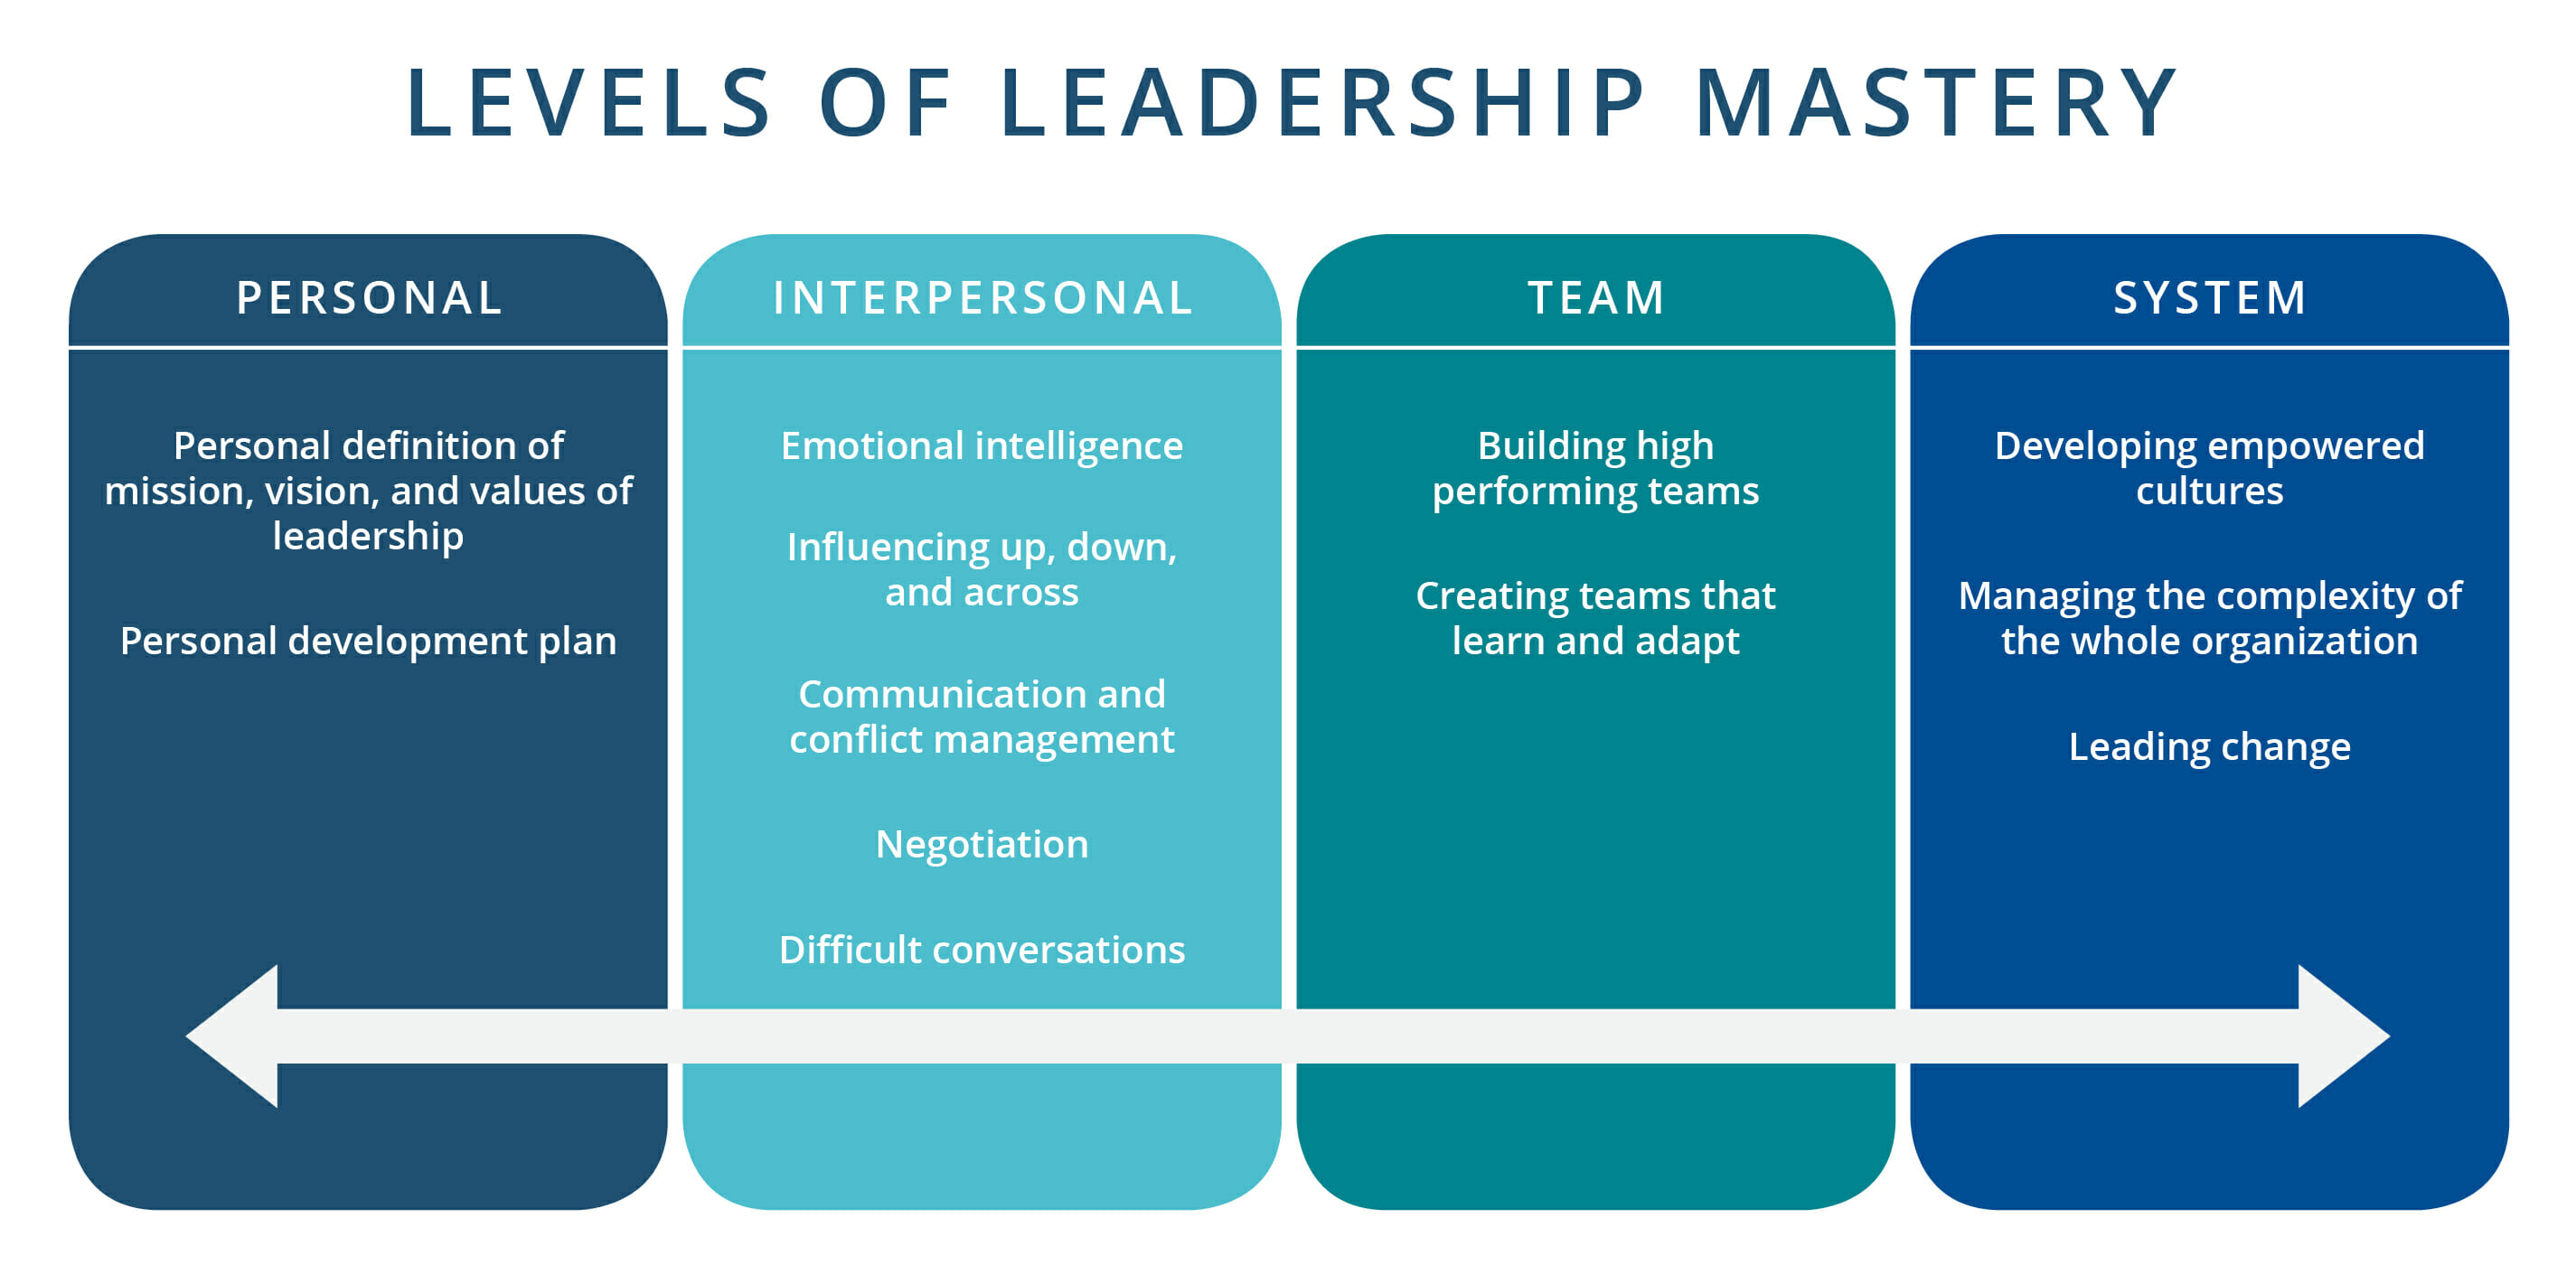 Levels of Leadership Mastery - Clint Sidle